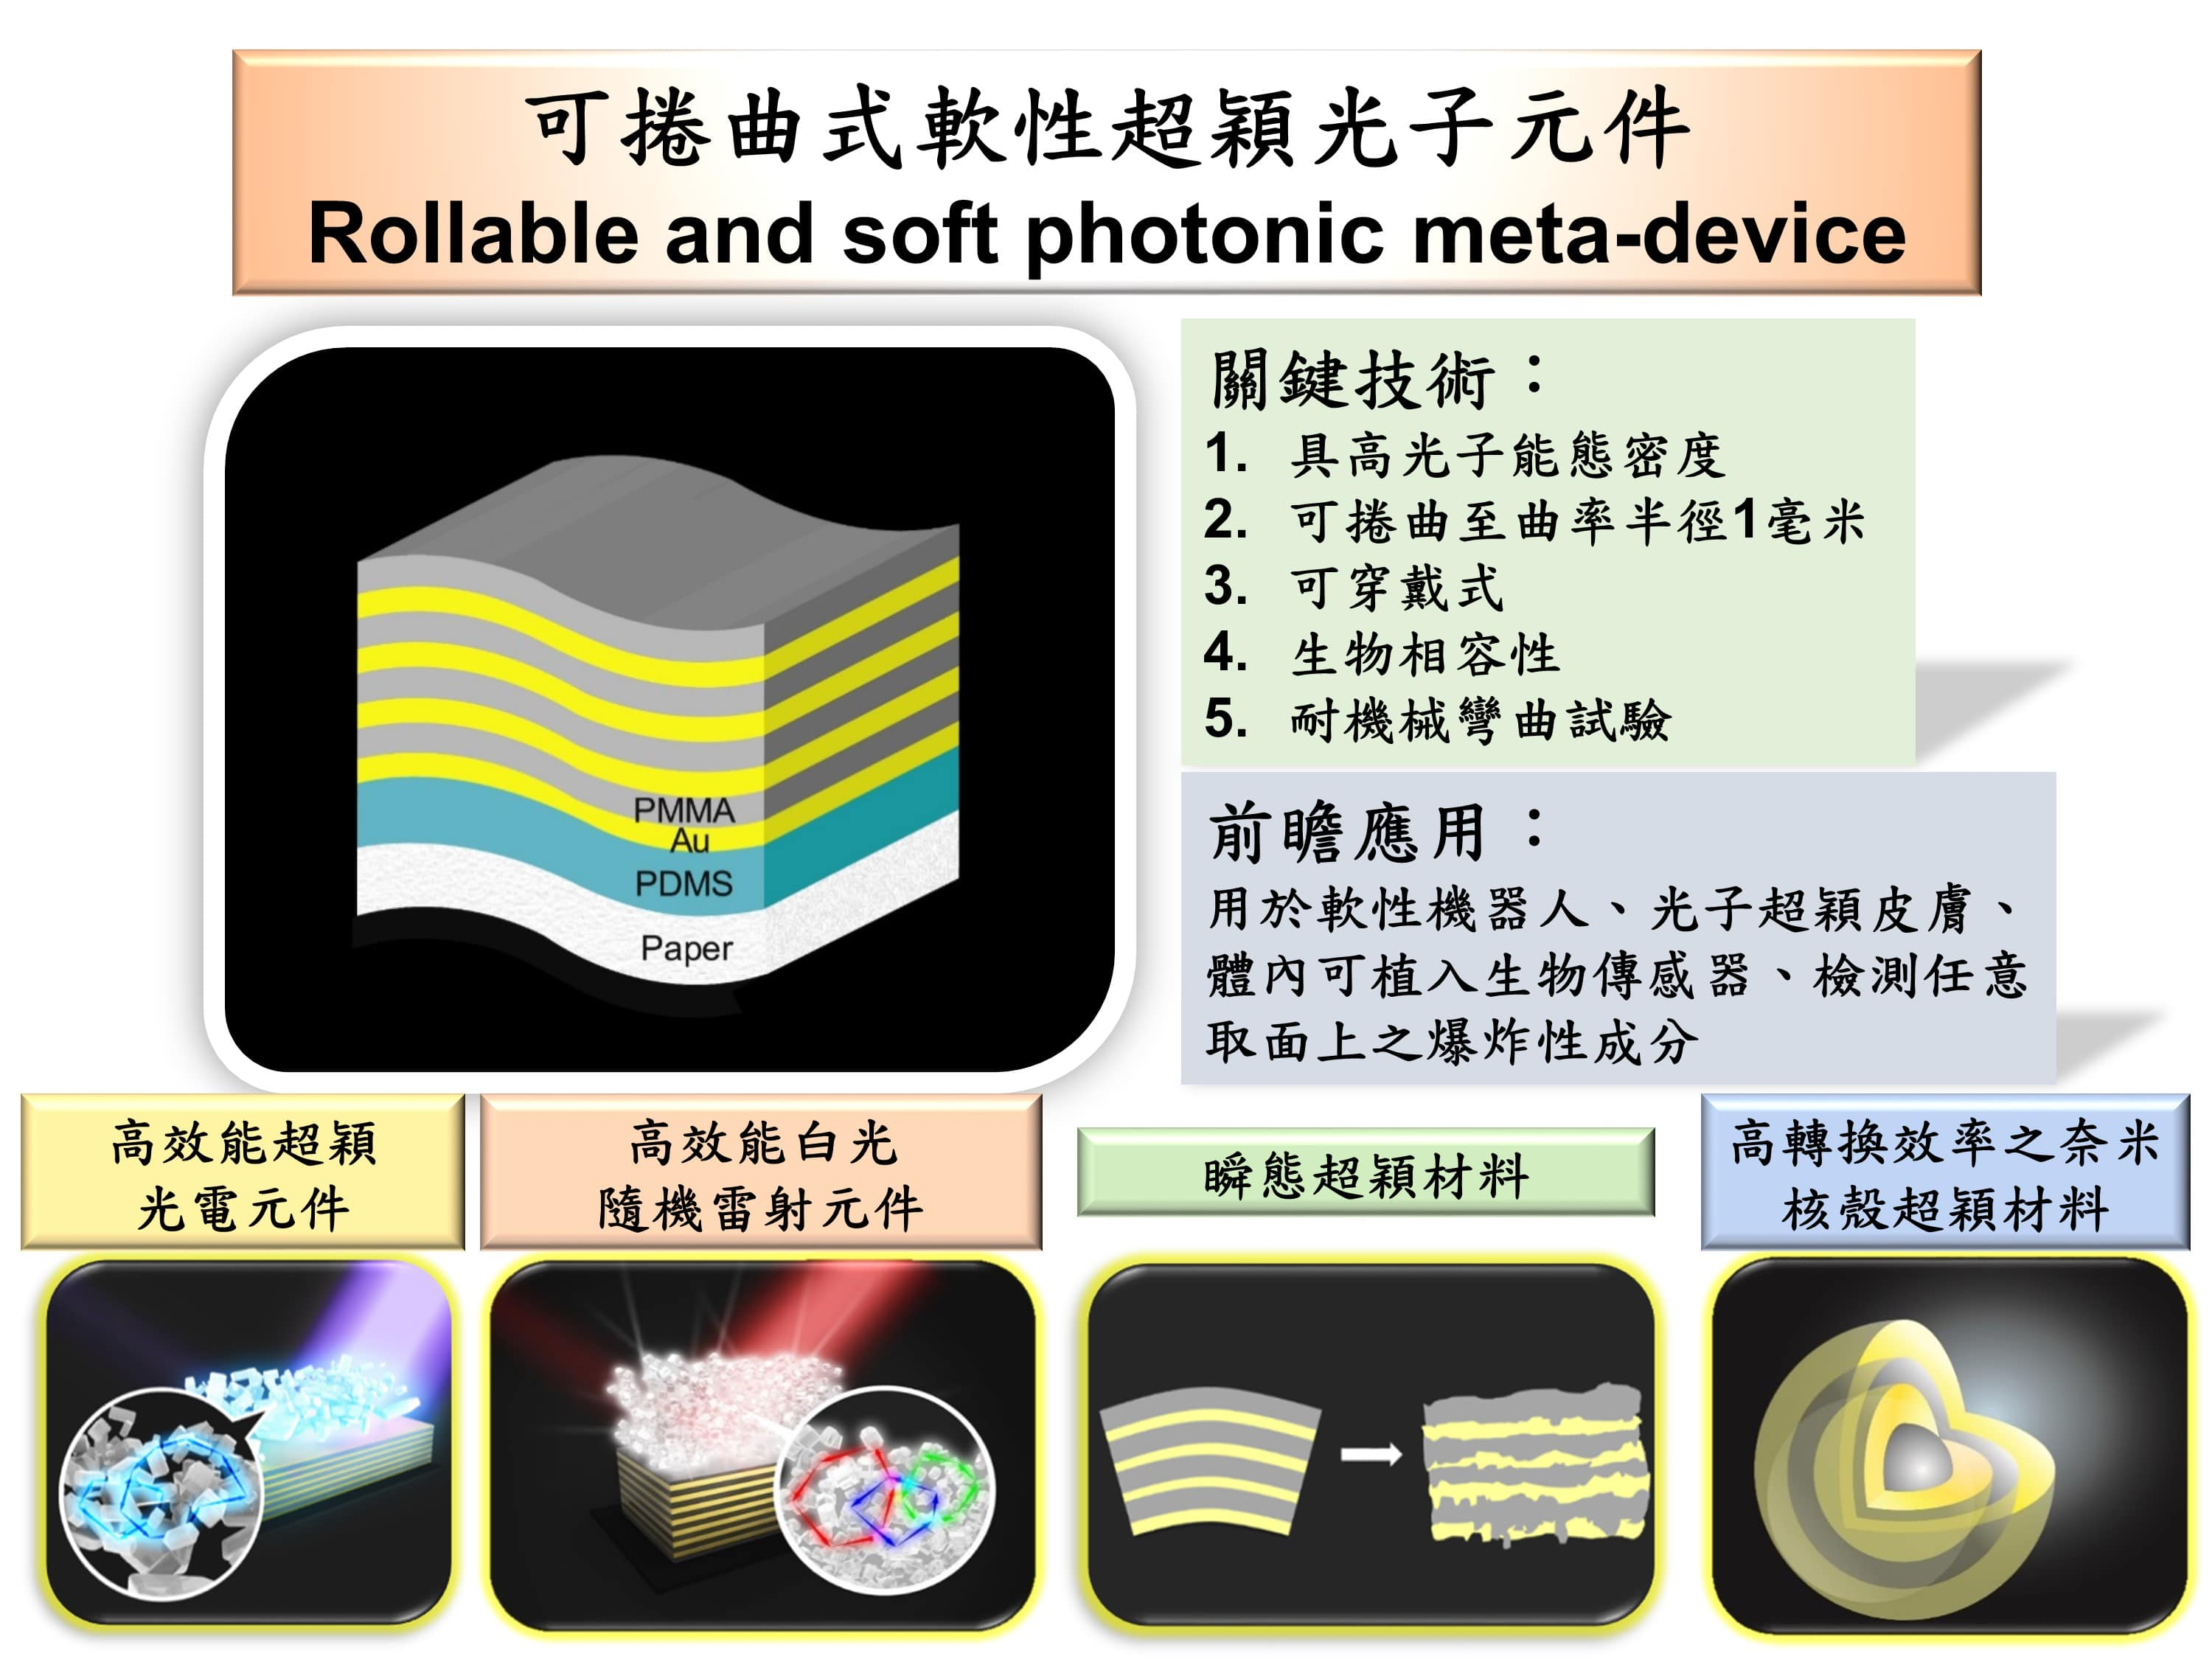 Rollable and soft photonic meta-device